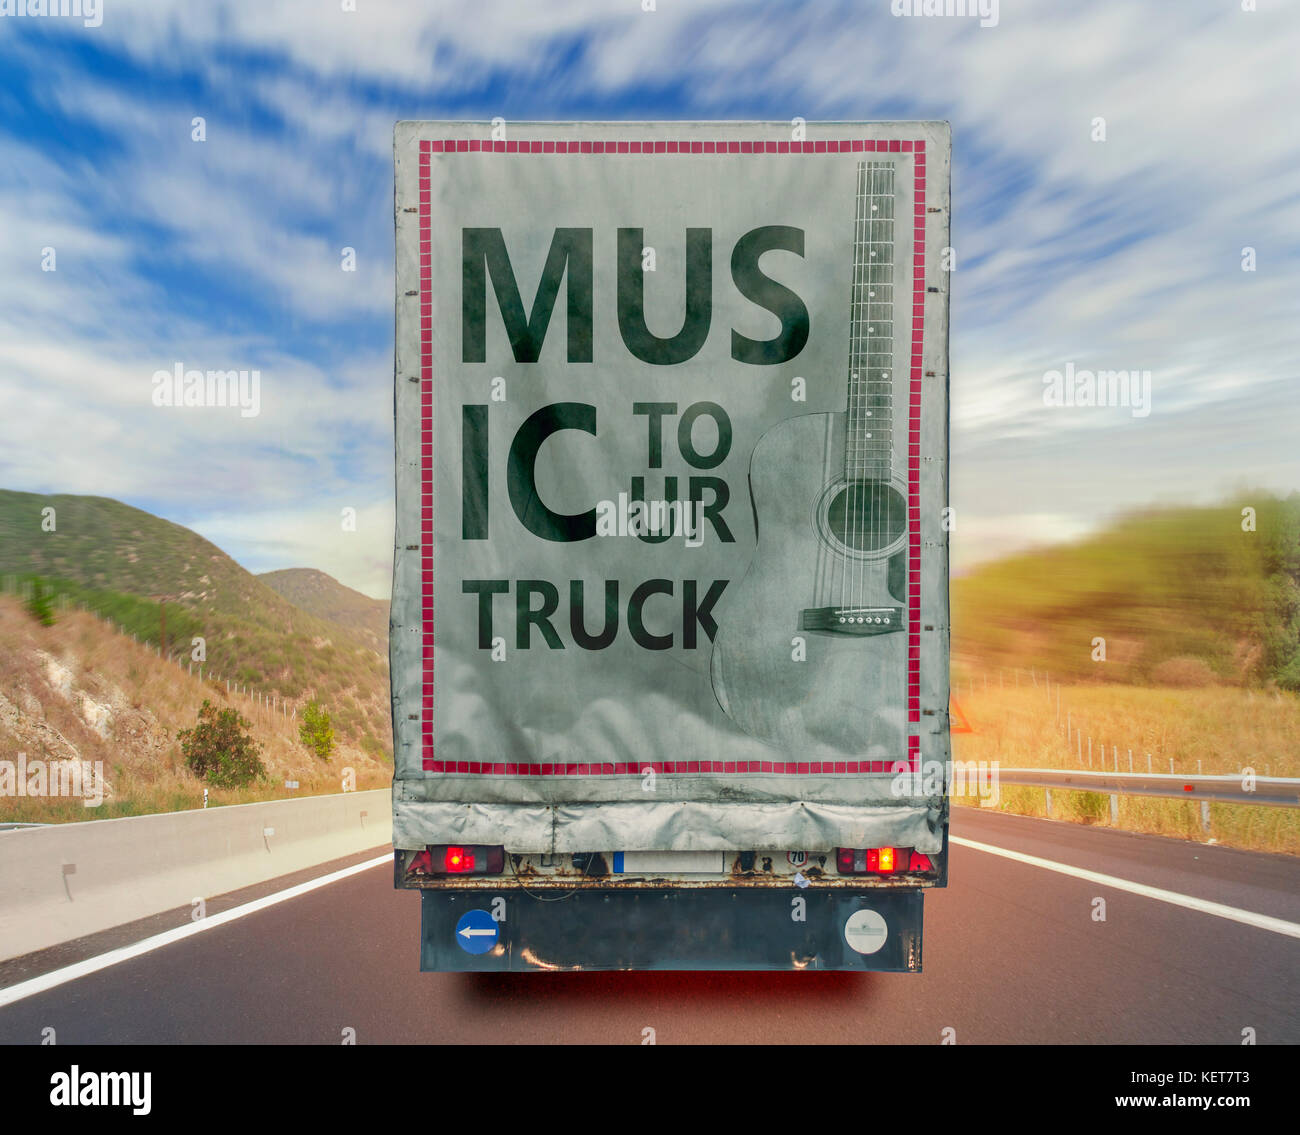 Back view of music tour truck cargo transport container on the high way road - Stock Image